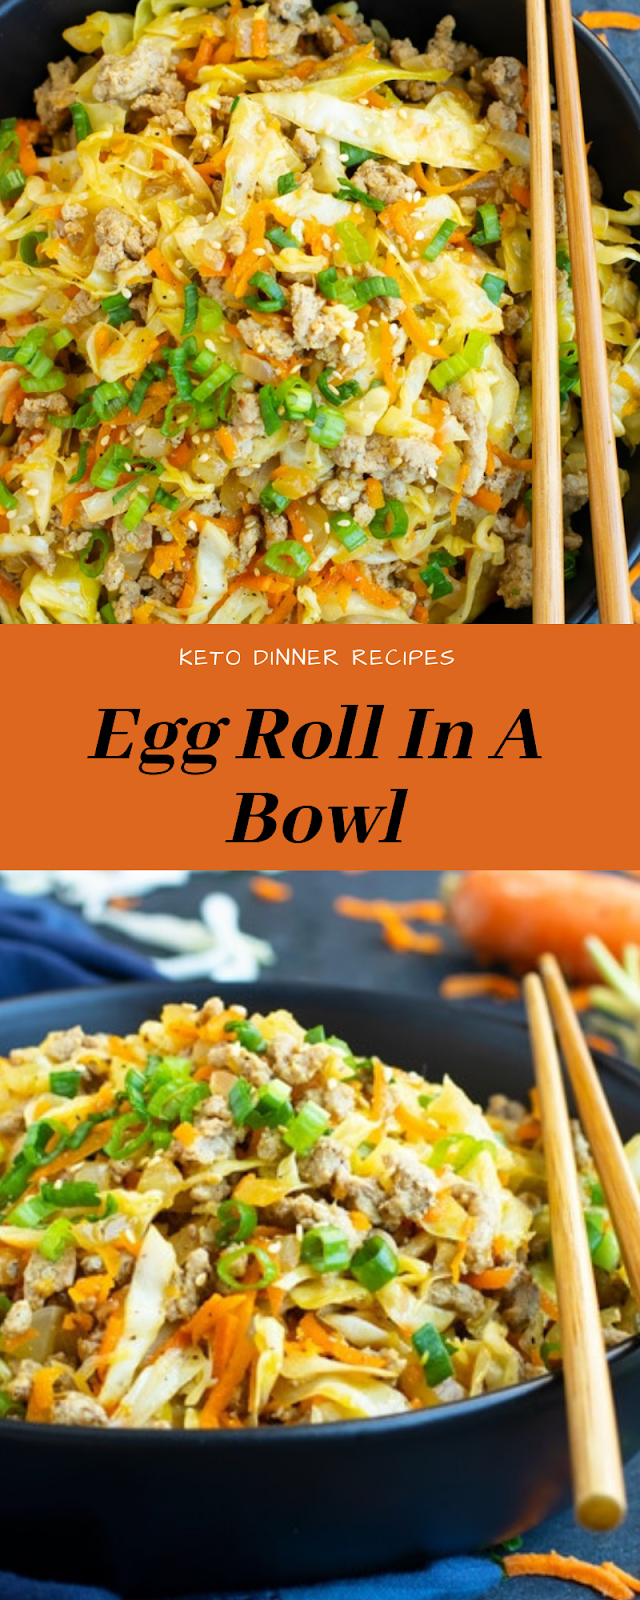 Keto Dinner Recipes | Egg Roll In A Bowl #eggrollinabowl